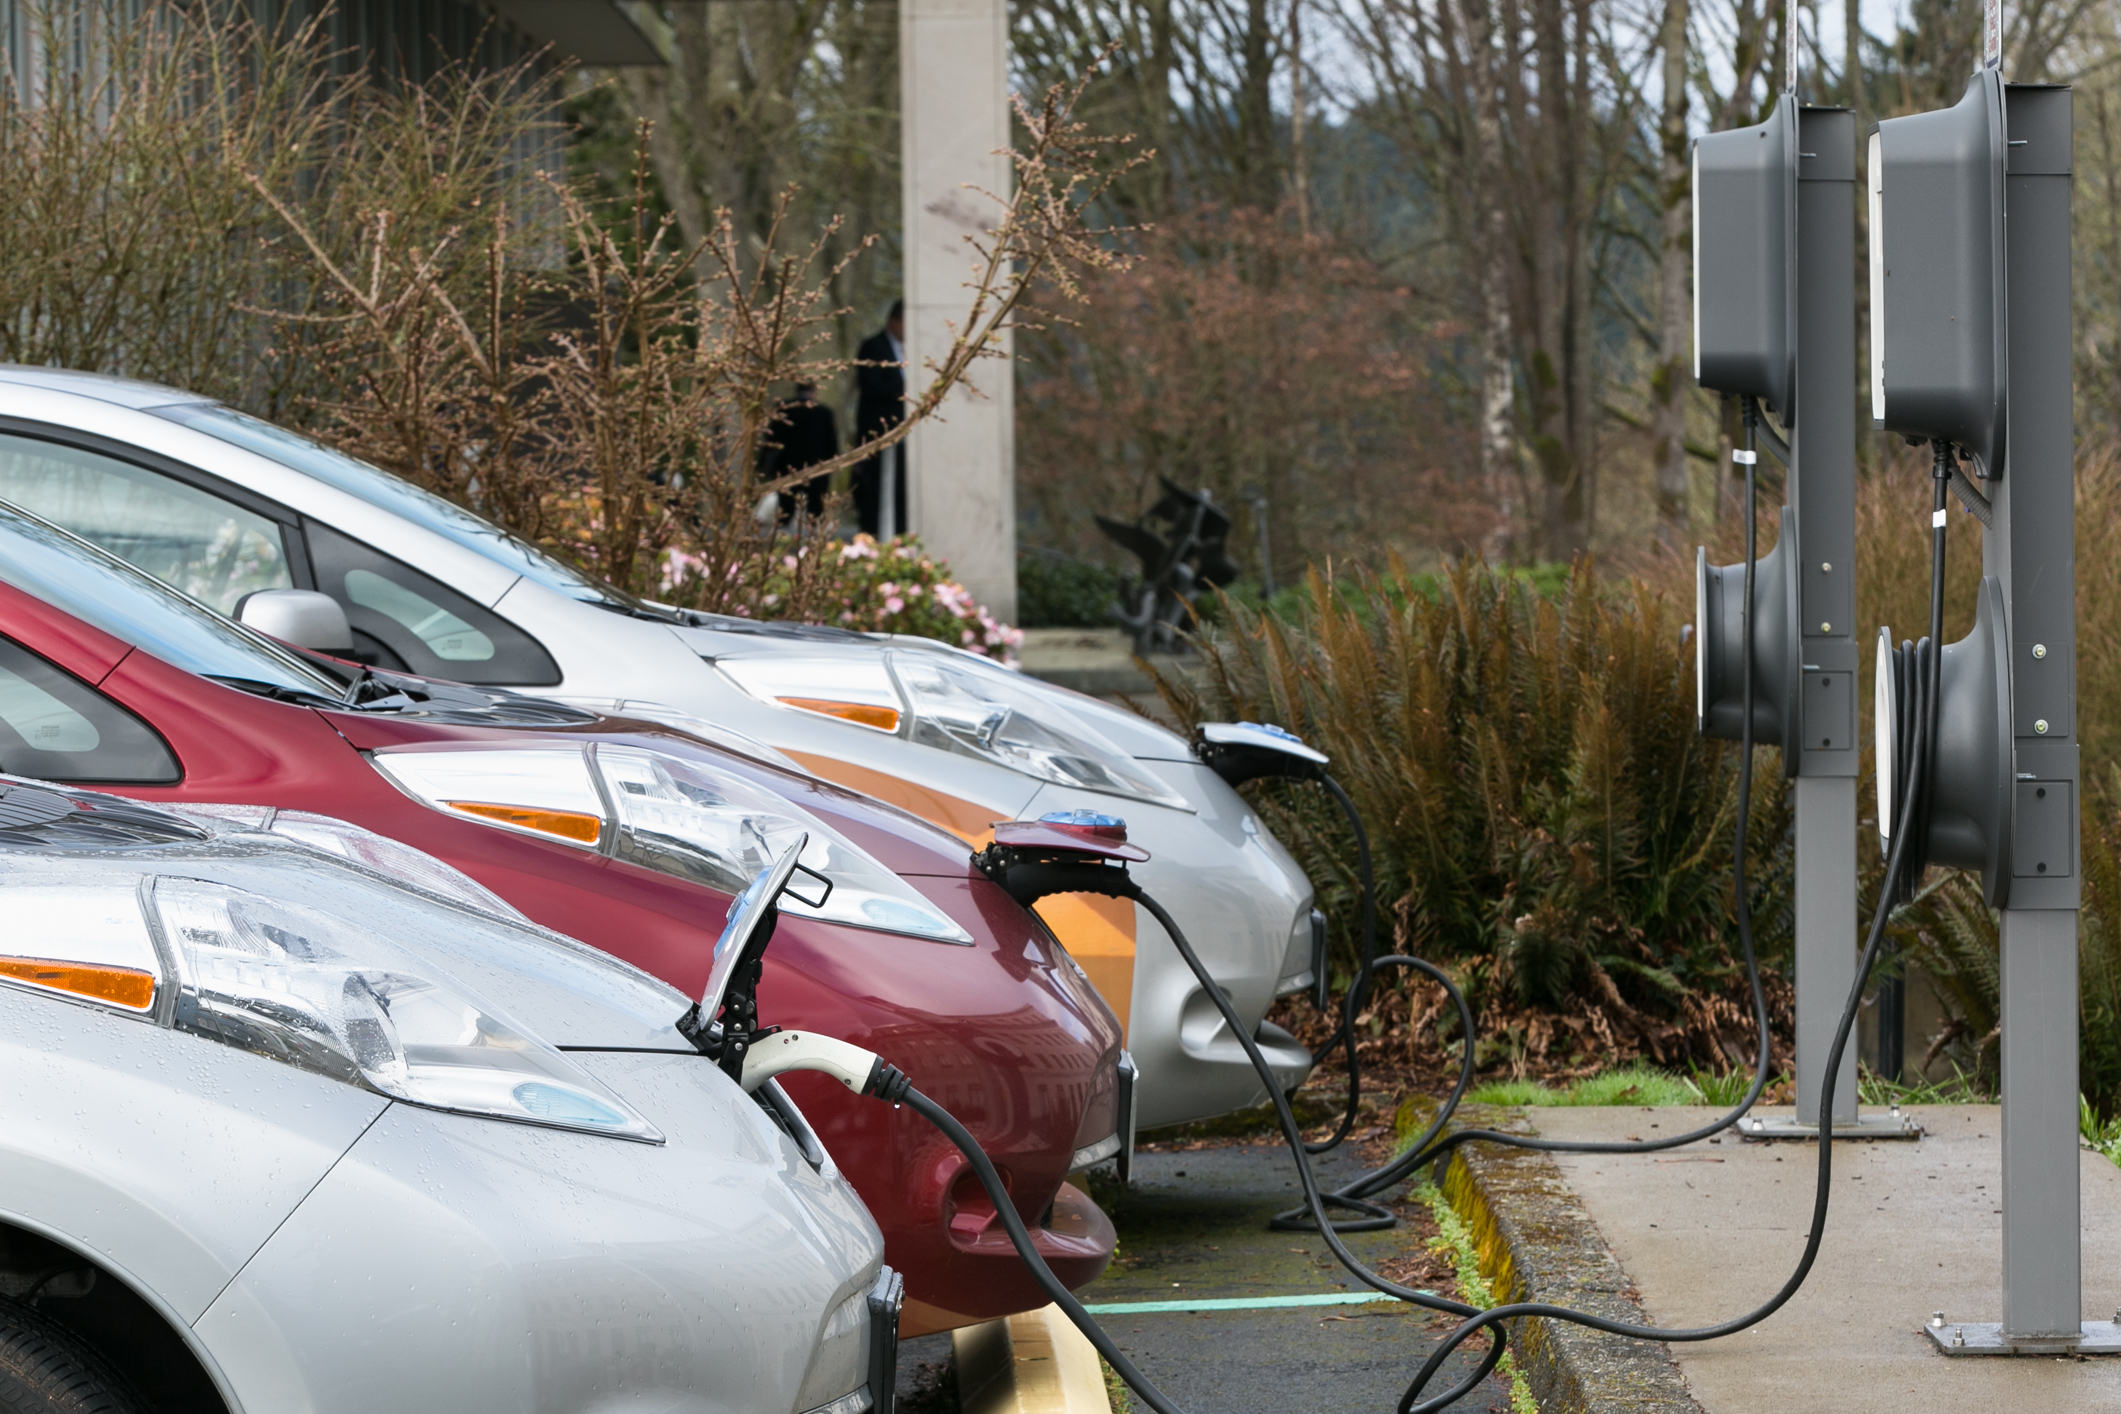 Electric cars and electric car charging stations. © wahousegop/Flickr